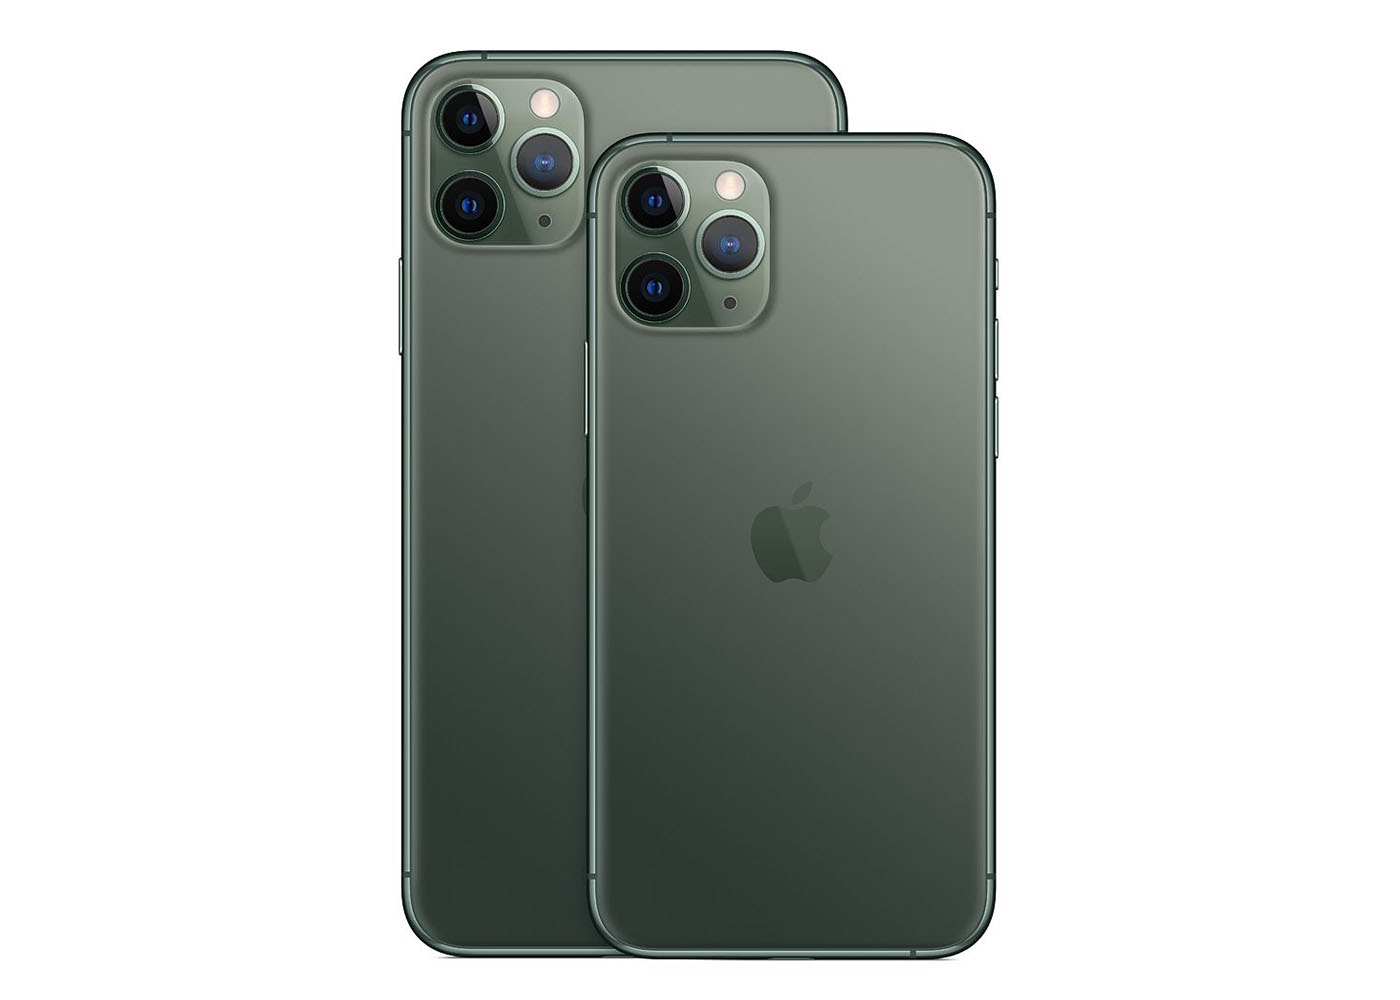 iPhone 11 Pro and 11 Max